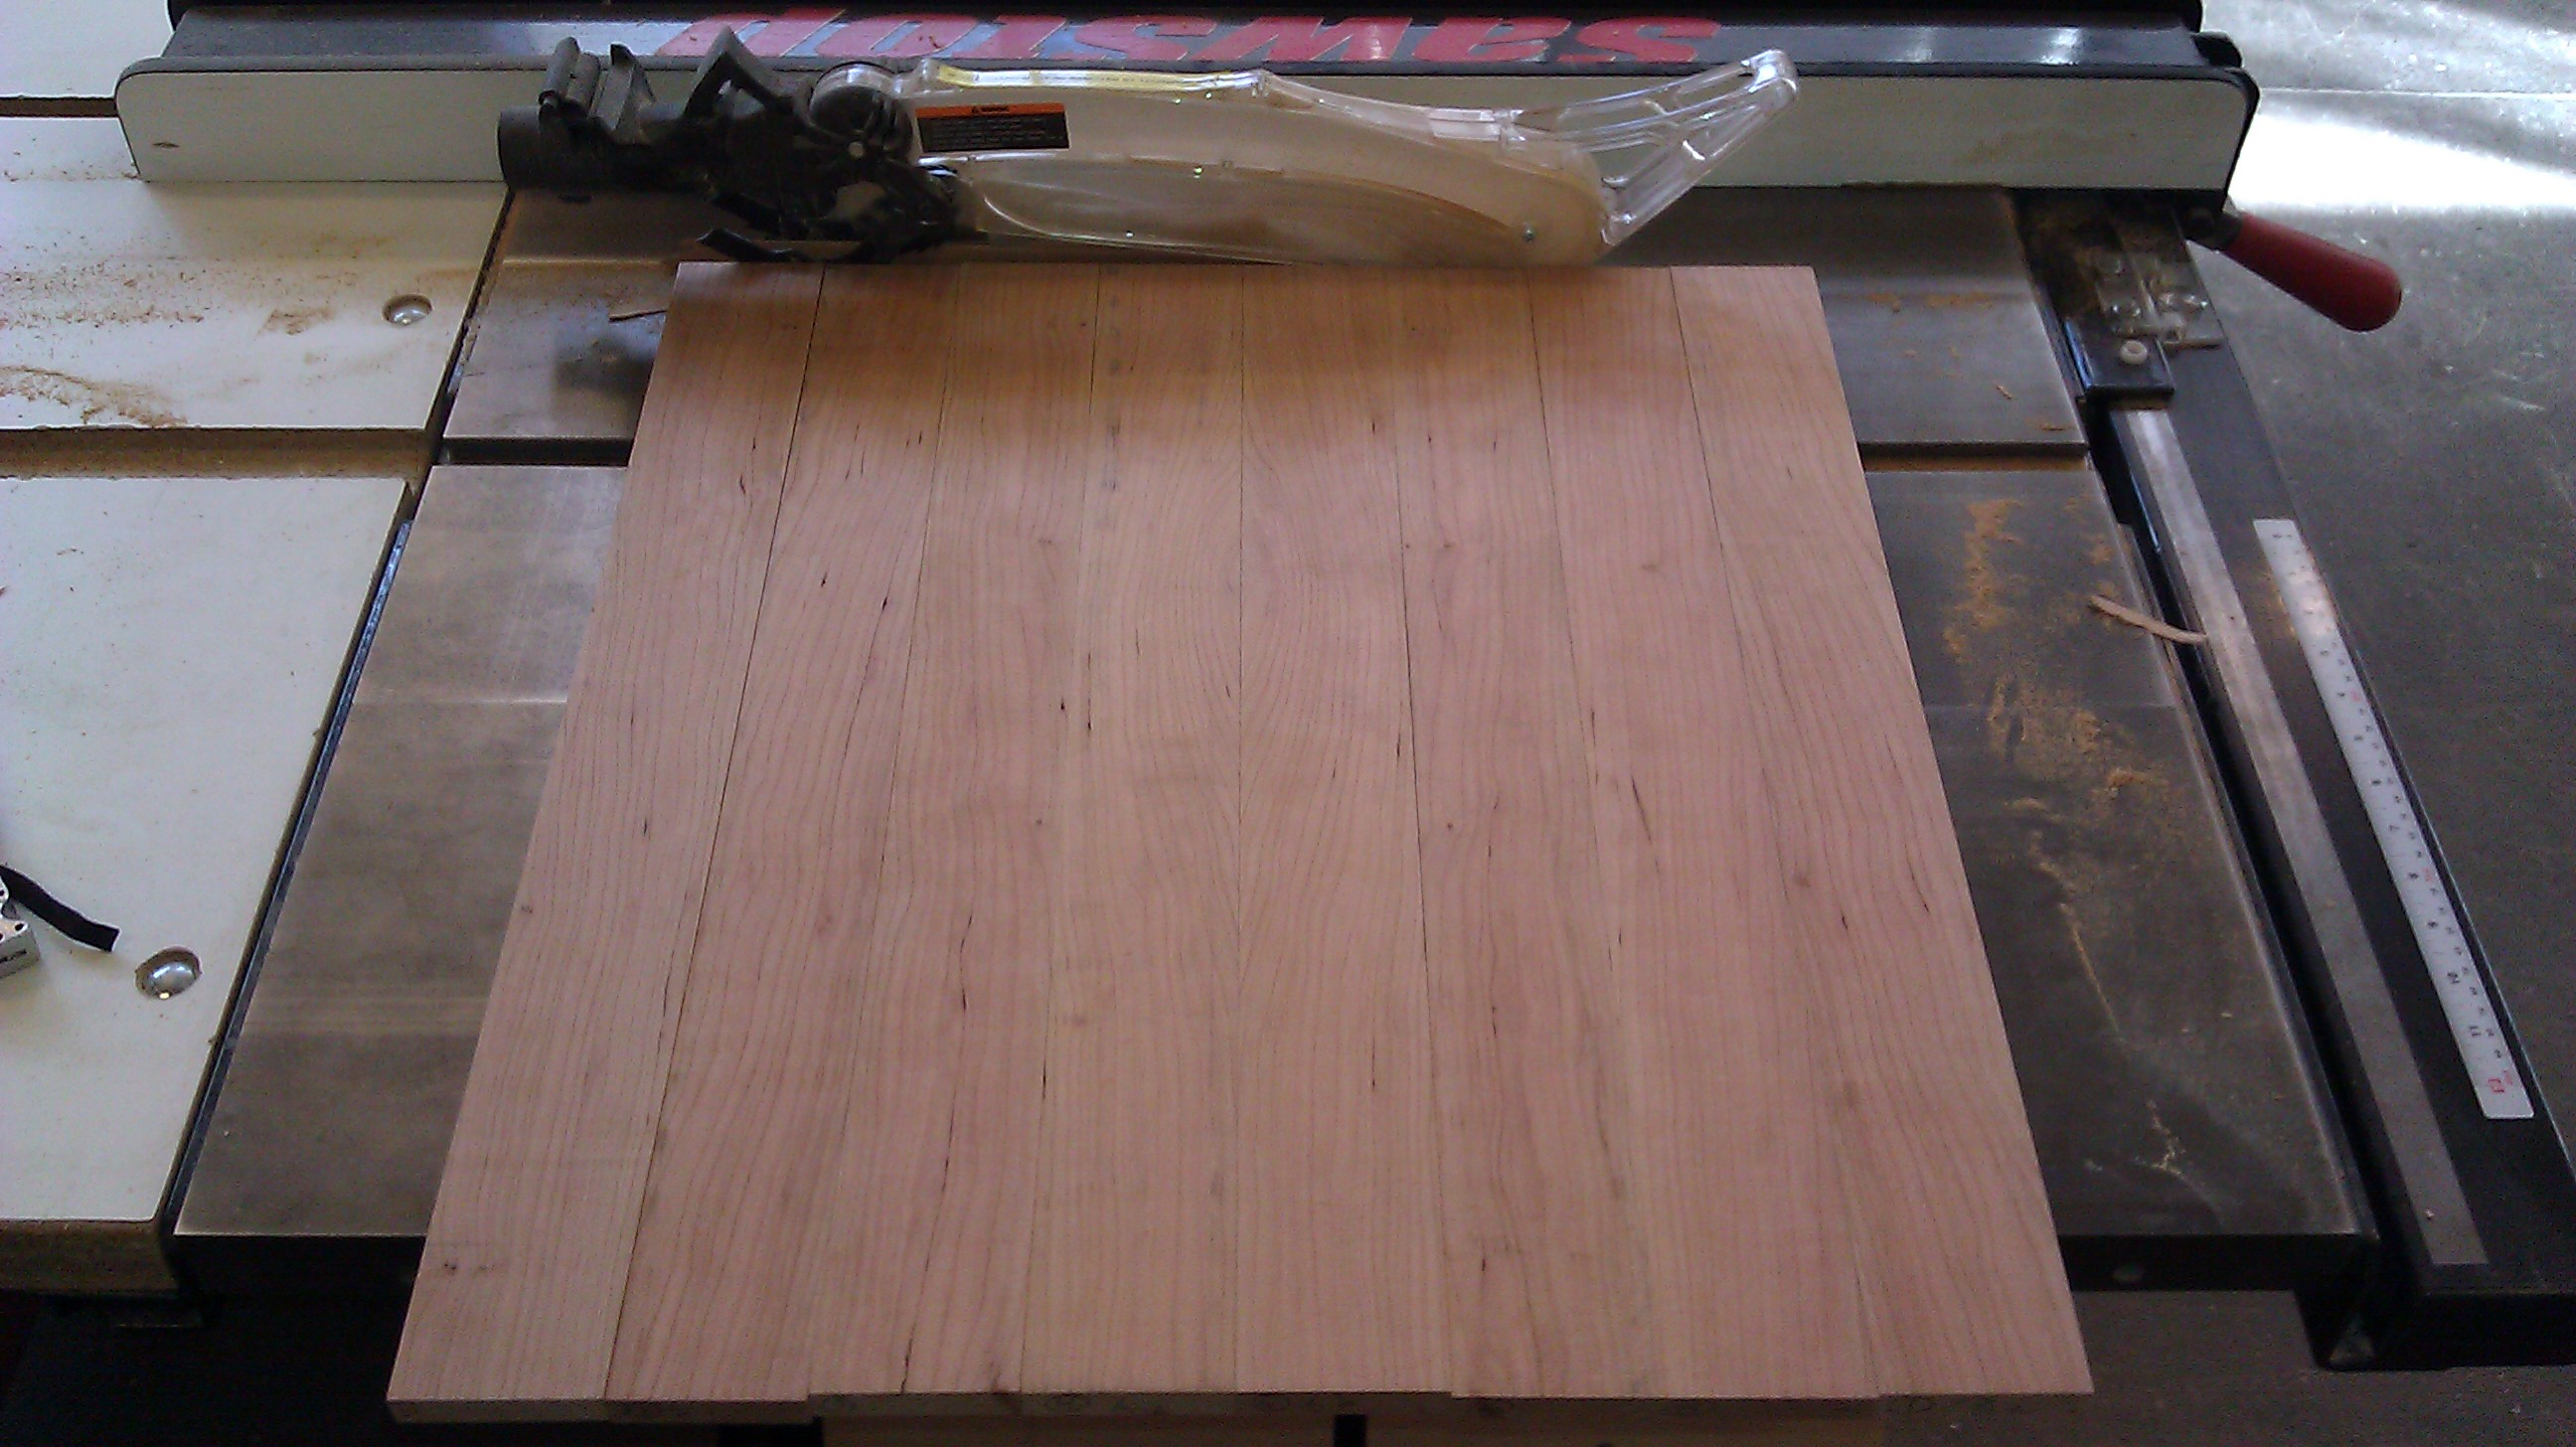 Picture of Last Cut on the Tablesaw